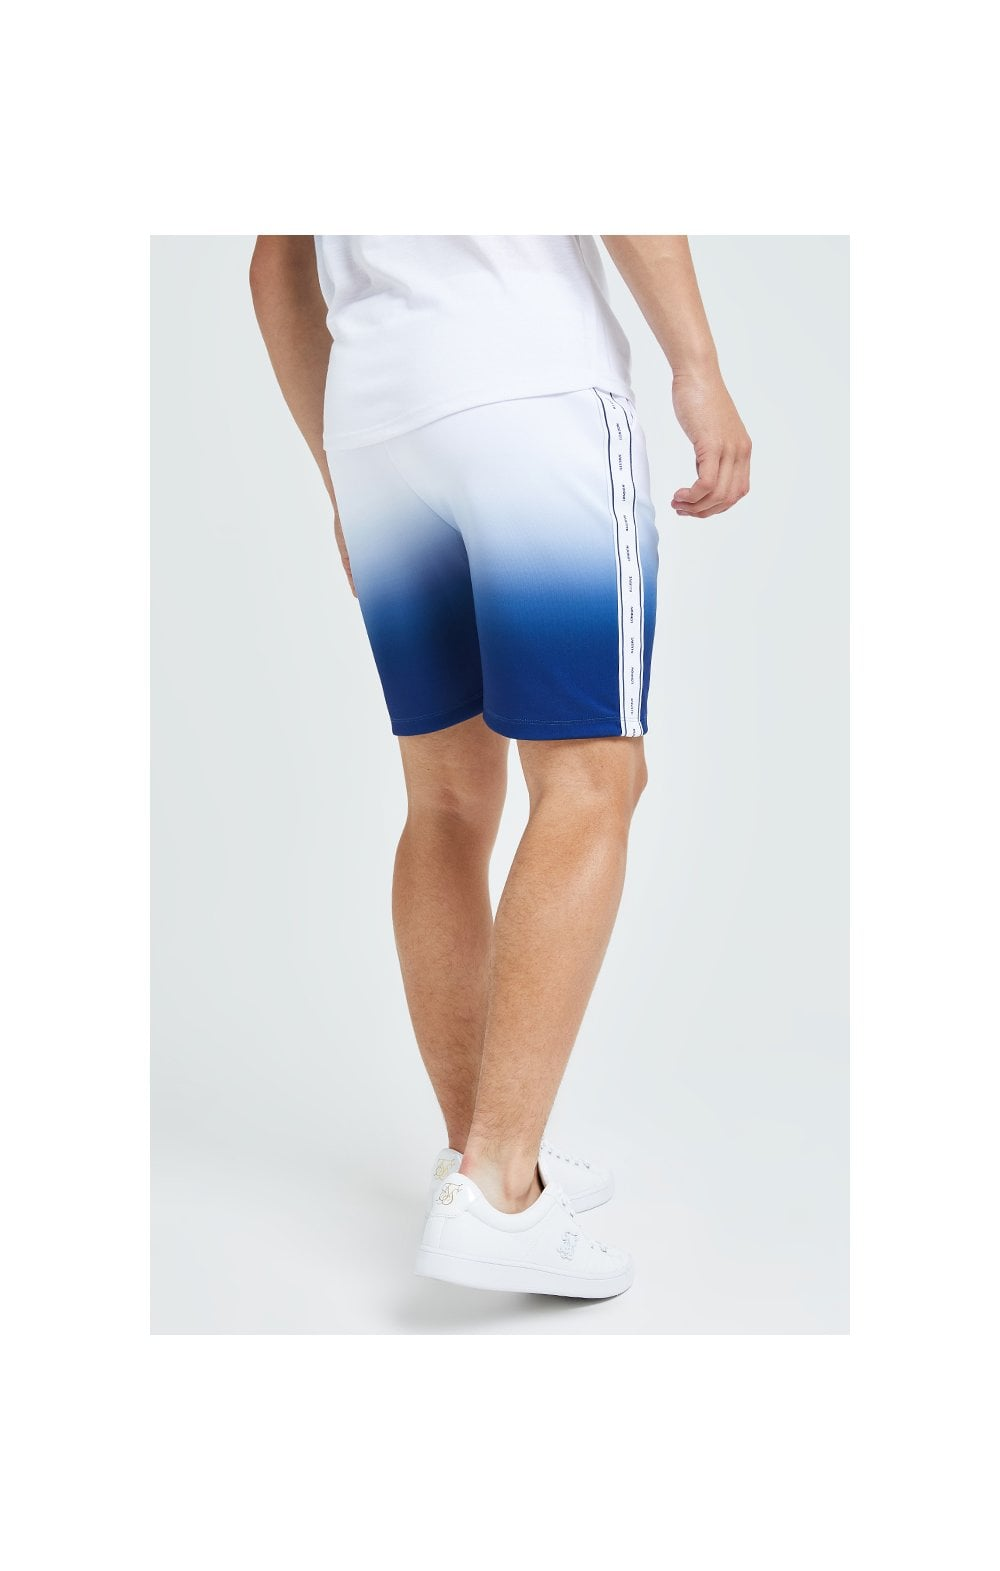 Illusive London Fade Poly Shorts - Indigo & White (8)